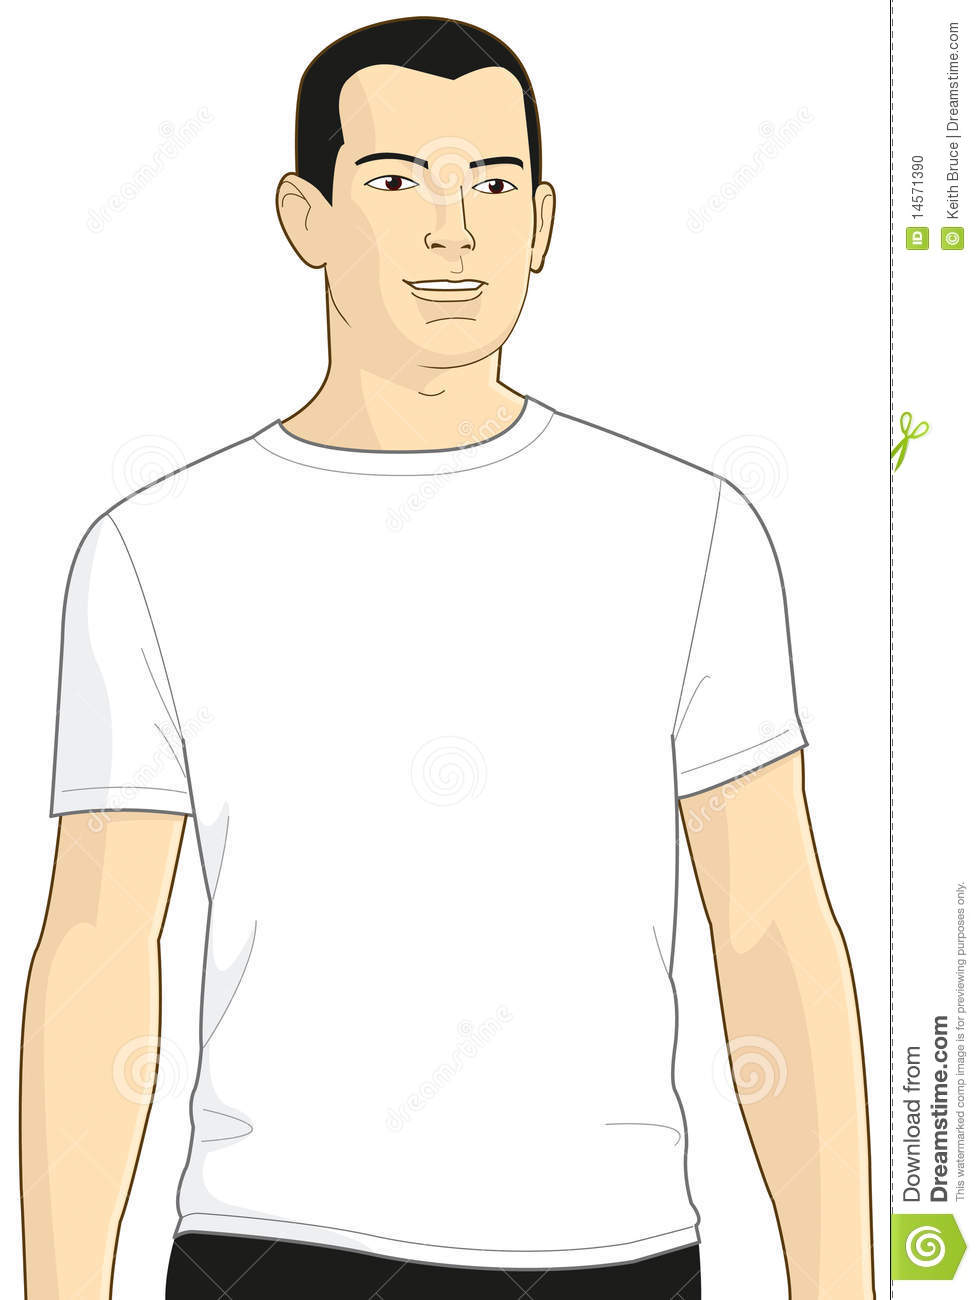 Blank white t shirt model man 3 stock photo image 14571390 for T shirt template with model